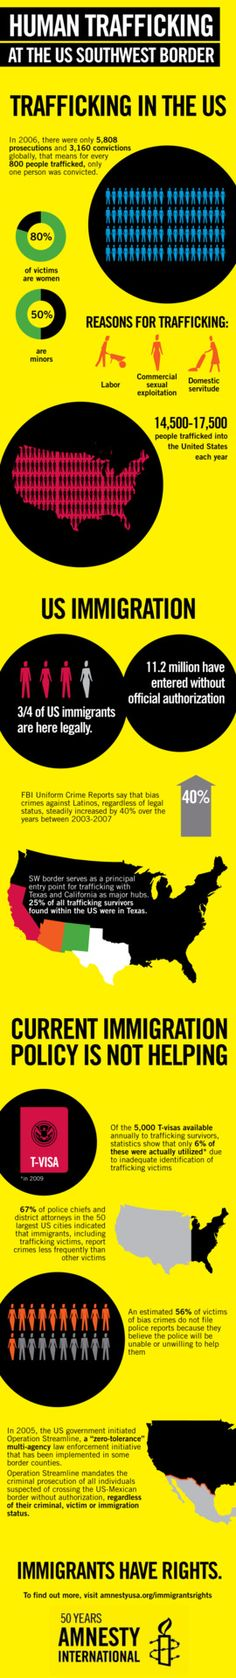 Trafficking Infographic